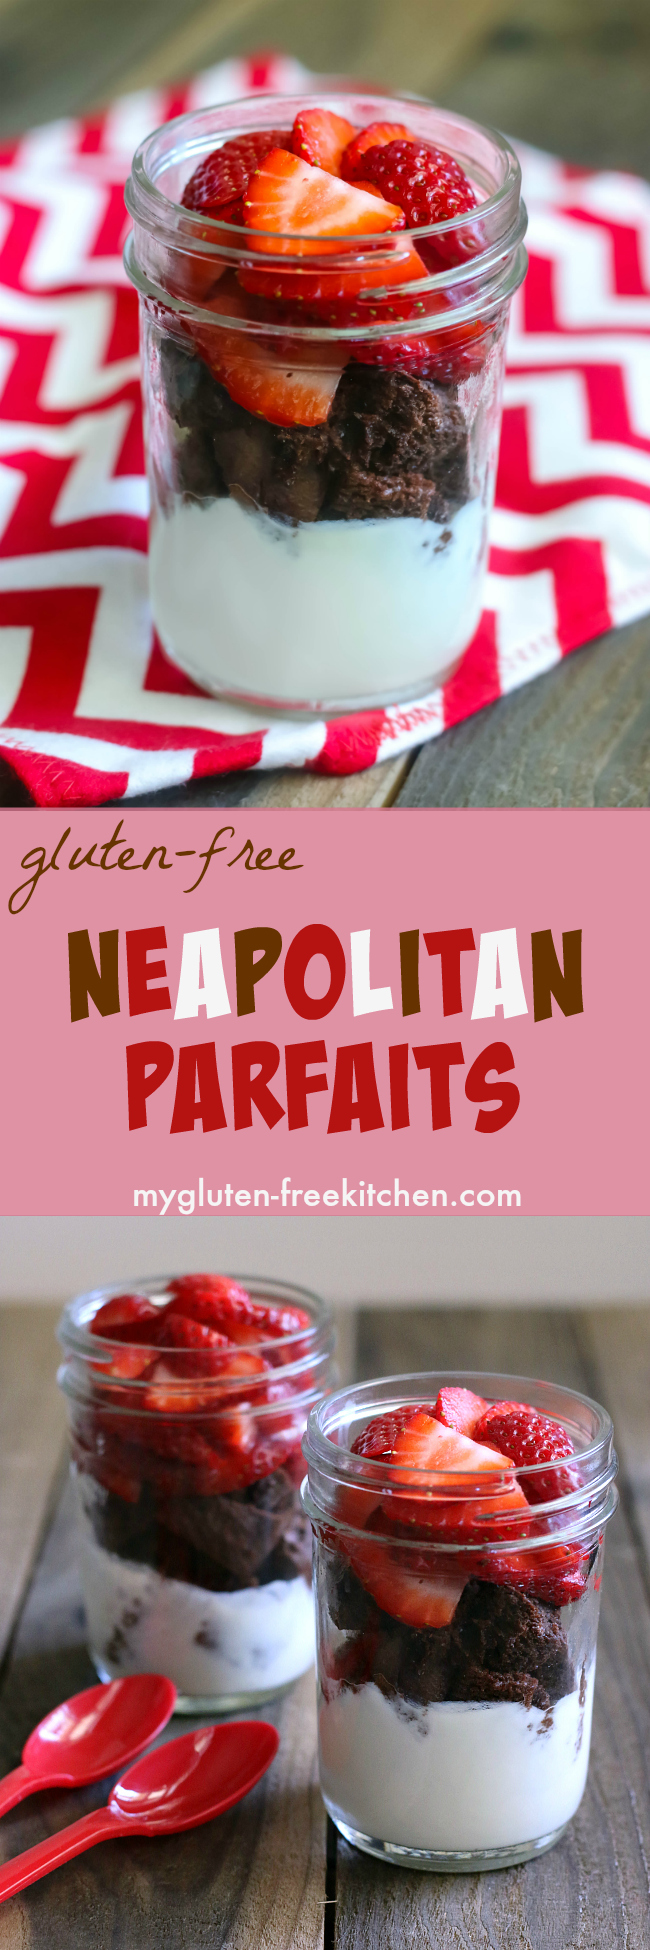 Neapolitan Parfaits. Yummy for breakfast or mid-day snack! Gluten-free, soy-free, nut-free recipe. Can easily adapt for dairy-free too!